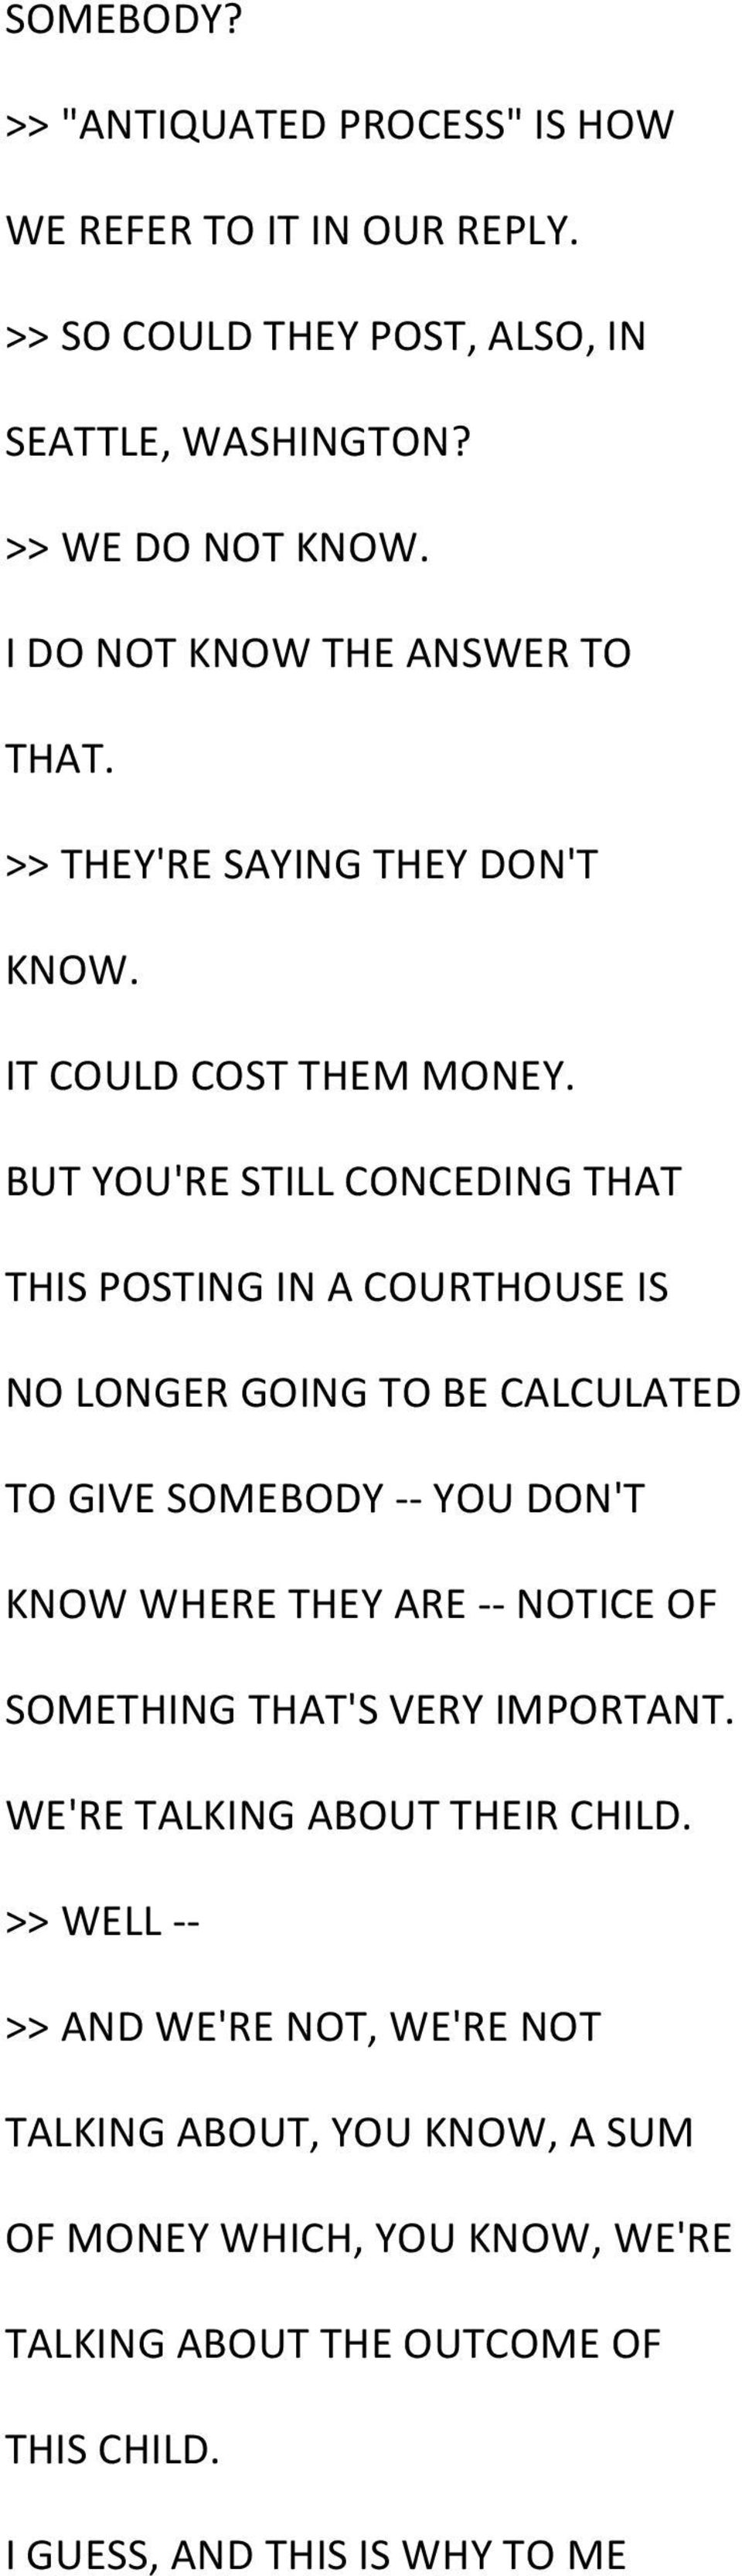 BUT YOU'RE STILL CONCEDING THAT THIS POSTING IN A COURTHOUSE IS NO LONGER GOING TO BE CALCULATED TO GIVE SOMEBODY - - YOU DON'T KNOW WHERE THEY ARE - - NOTICE